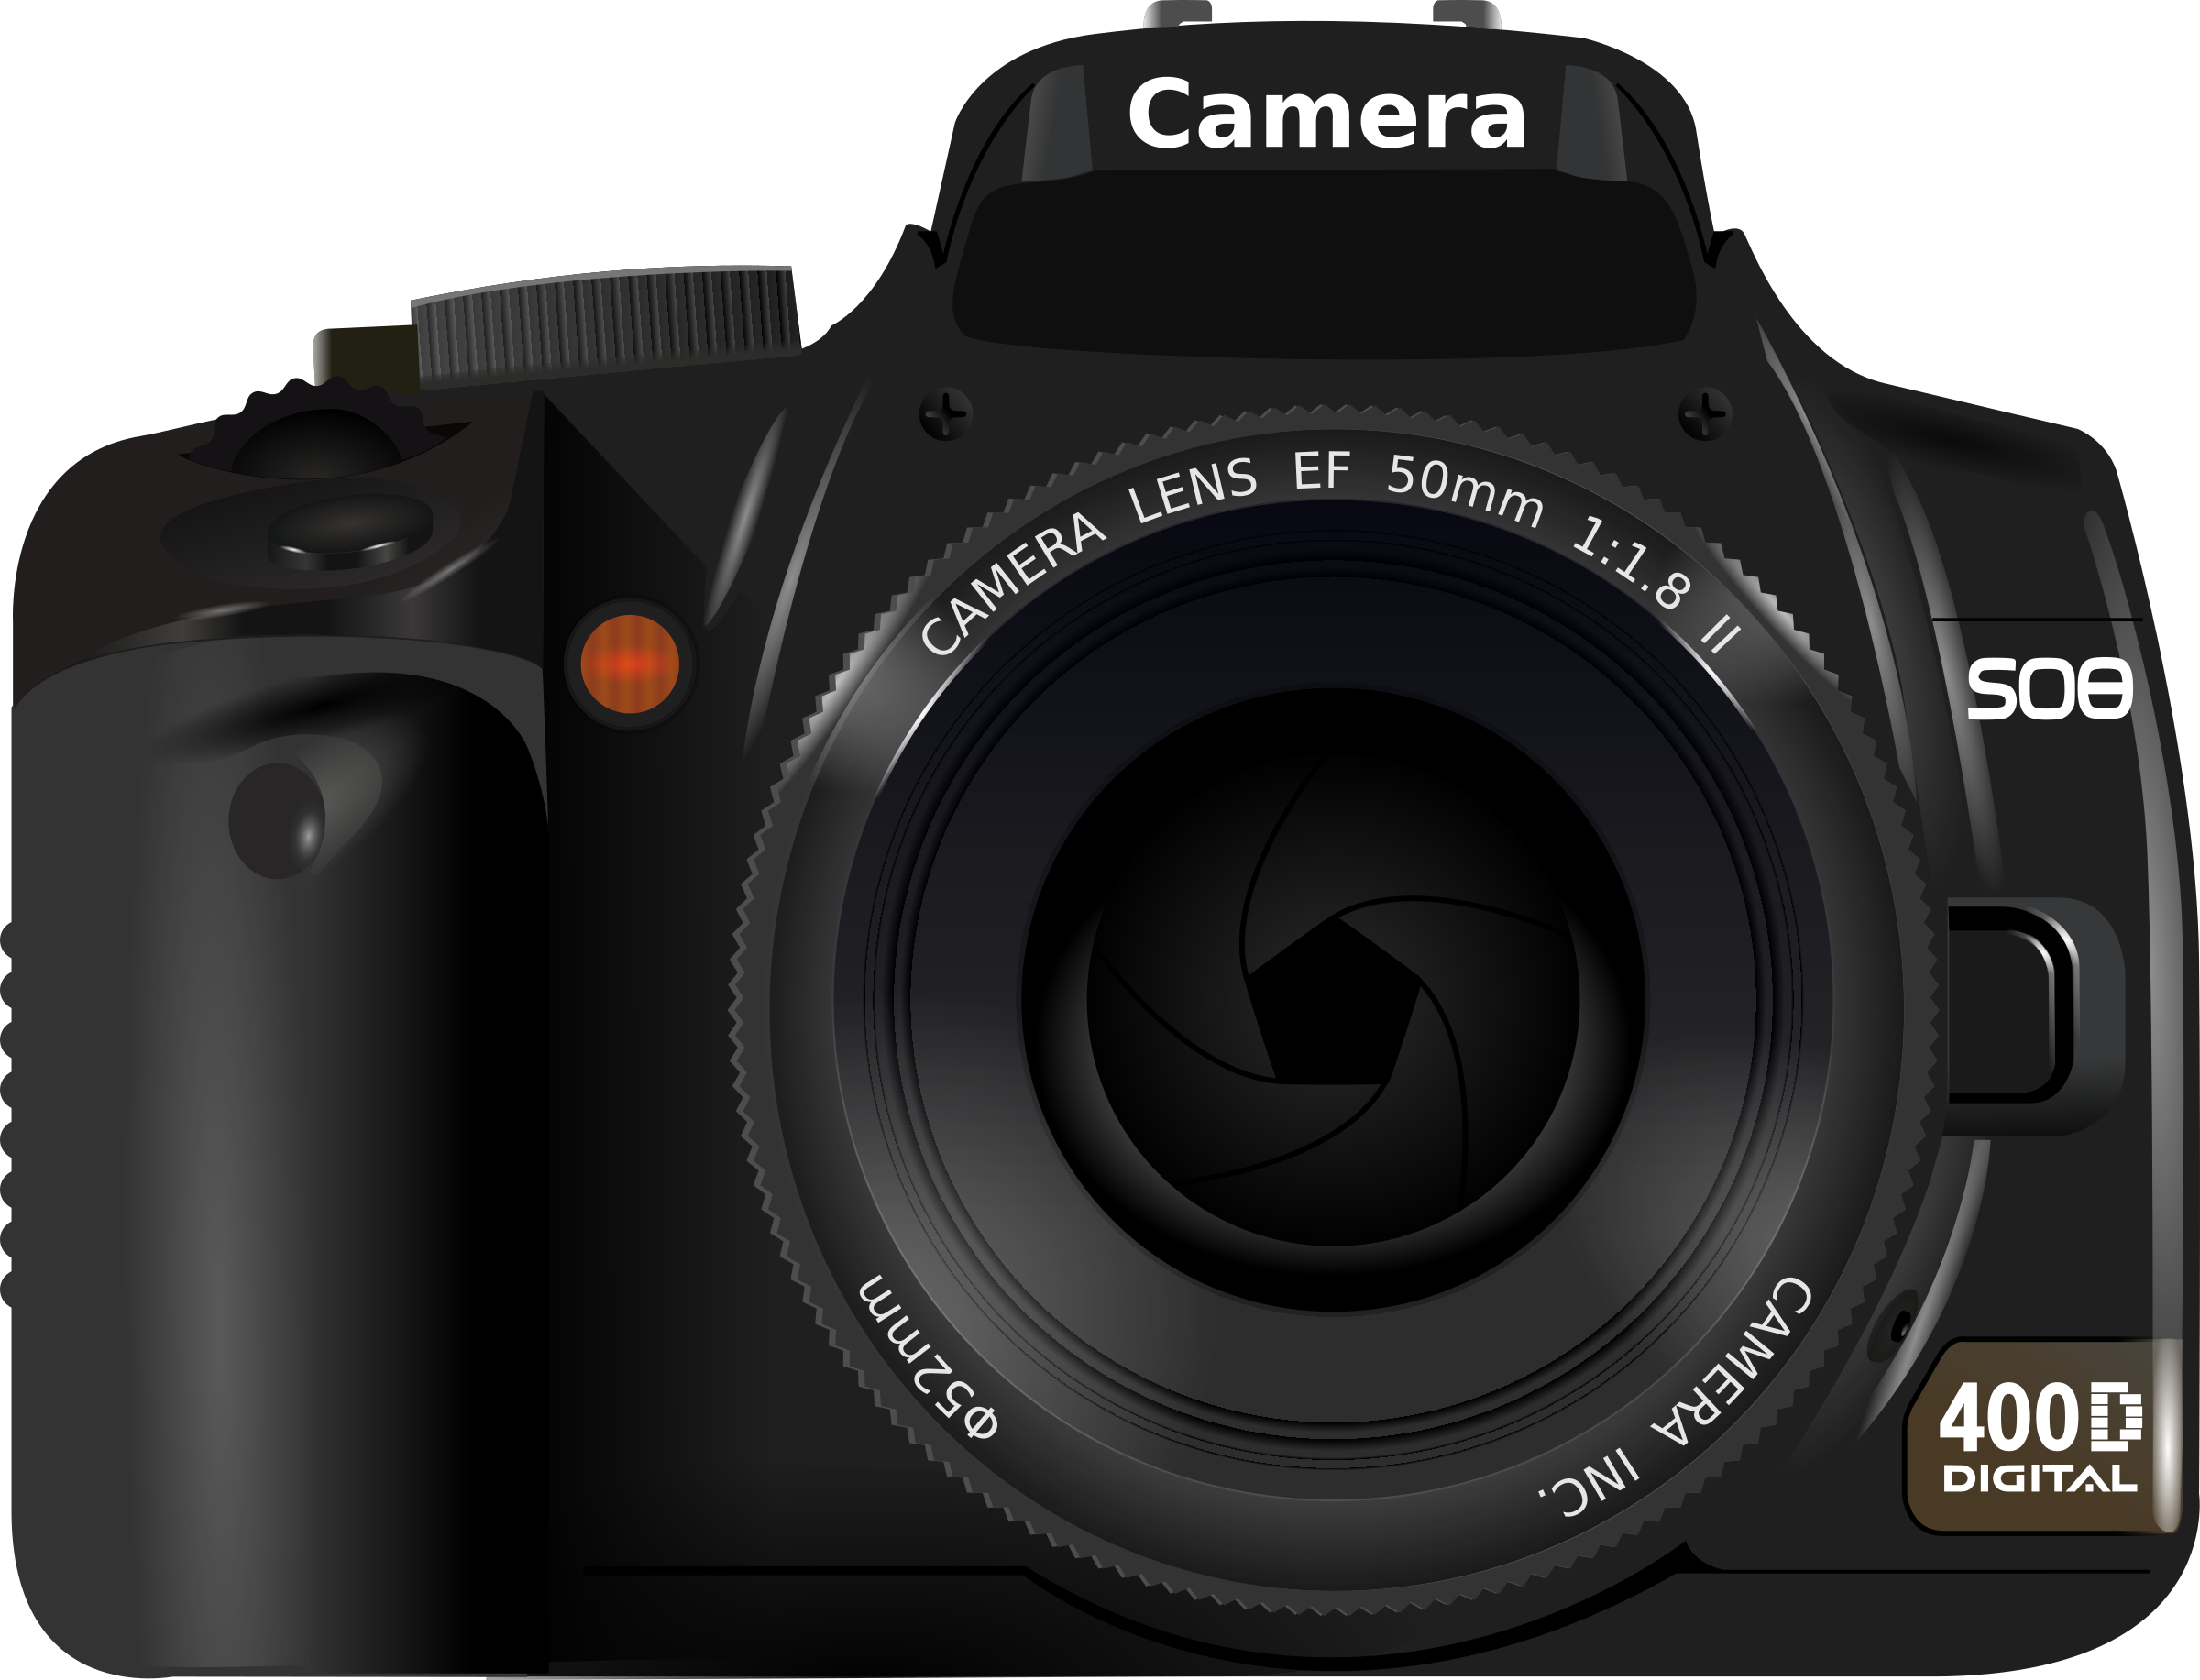 Flash clipart camera photo shoot. Png transparent images all